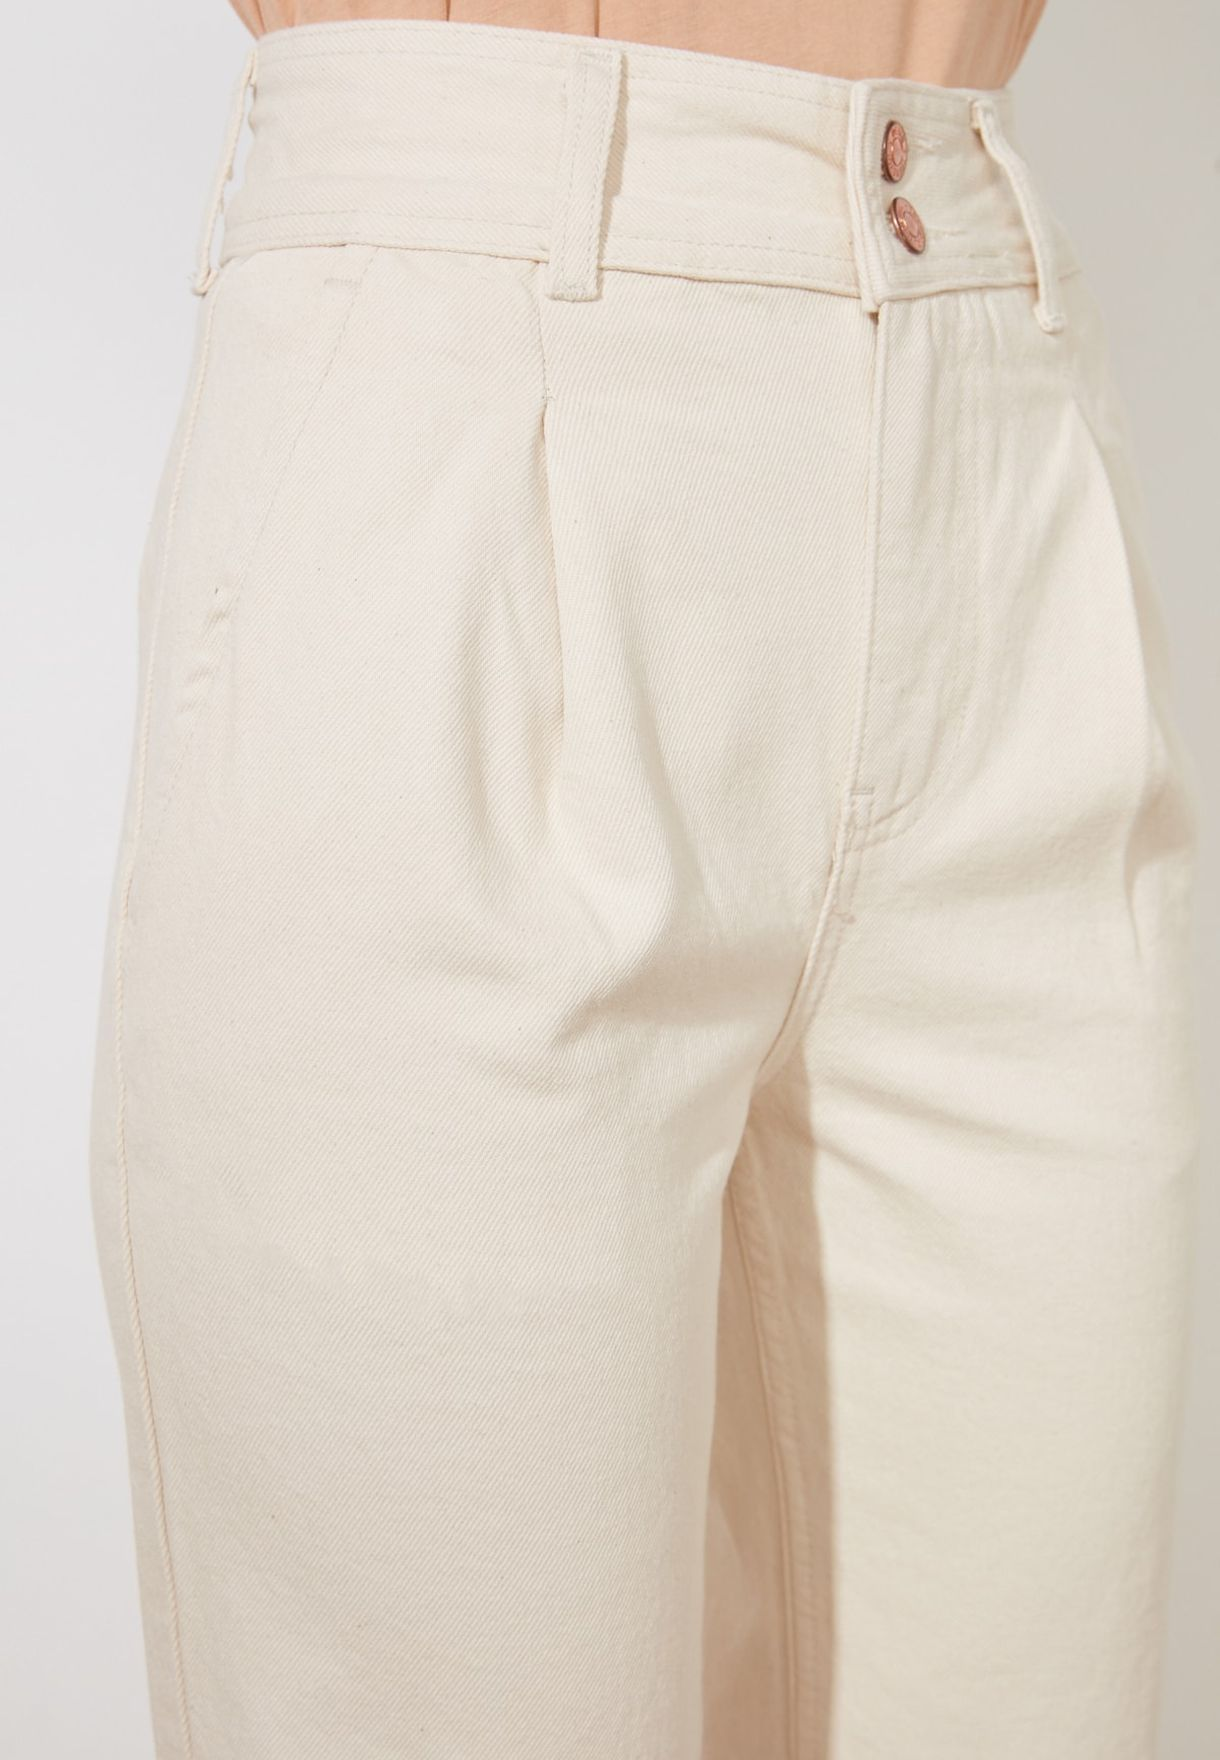 Button Detail Pleated Relaxed Mom Jeans